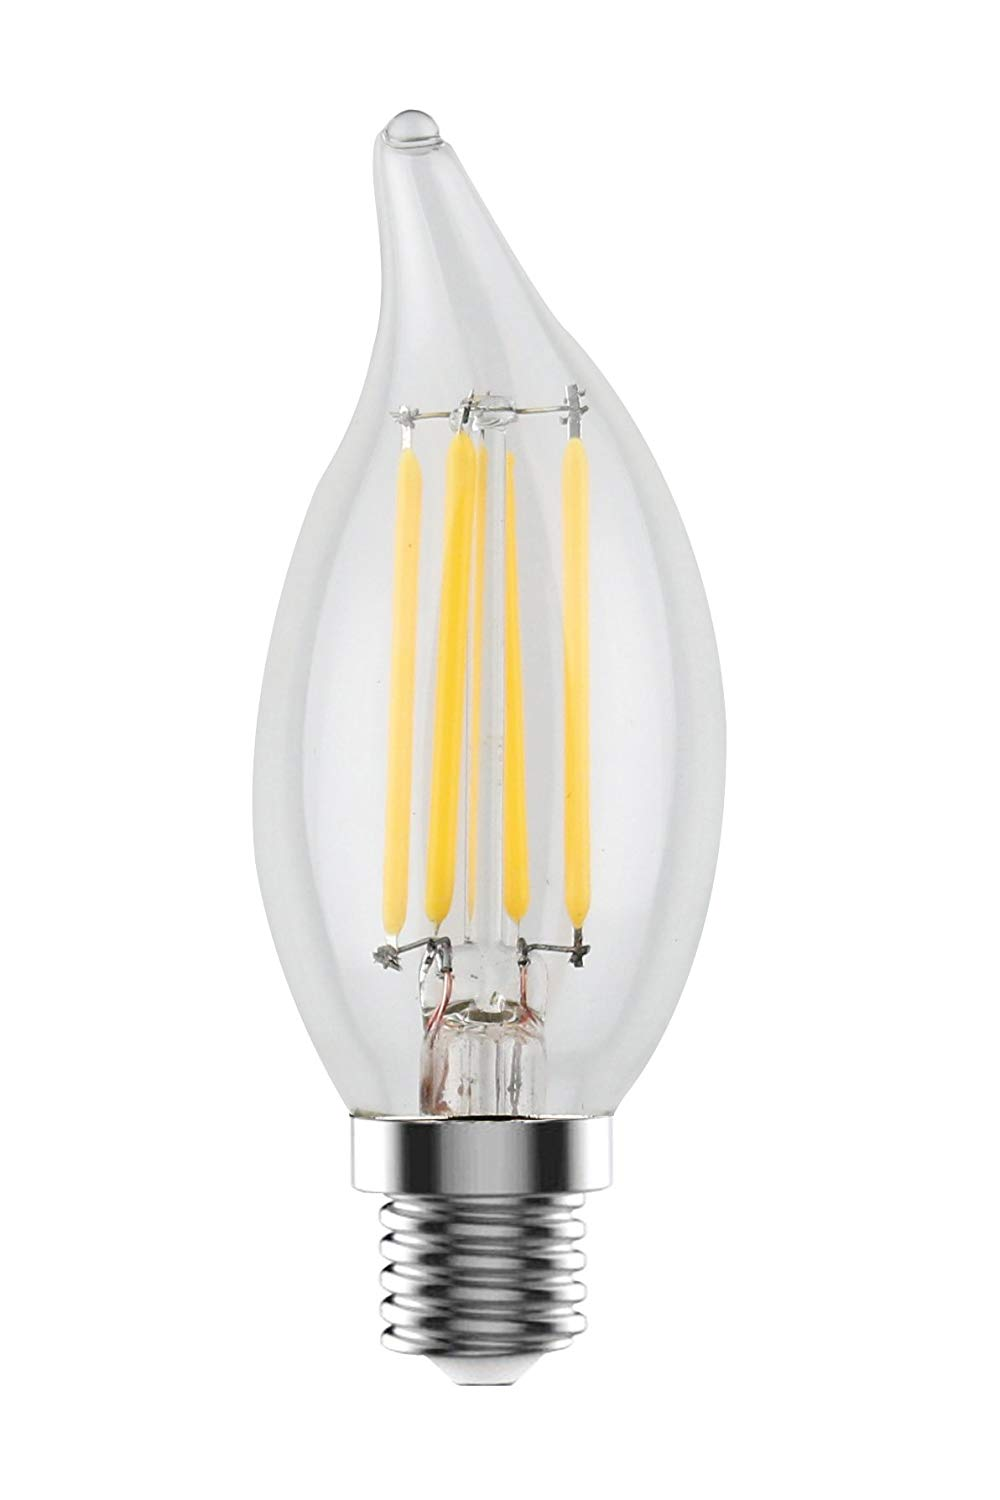 Urbanest C32L E12 LED Filament Edison-style Flame Tip Light Bulb, 4 Watt 60W Equivalent